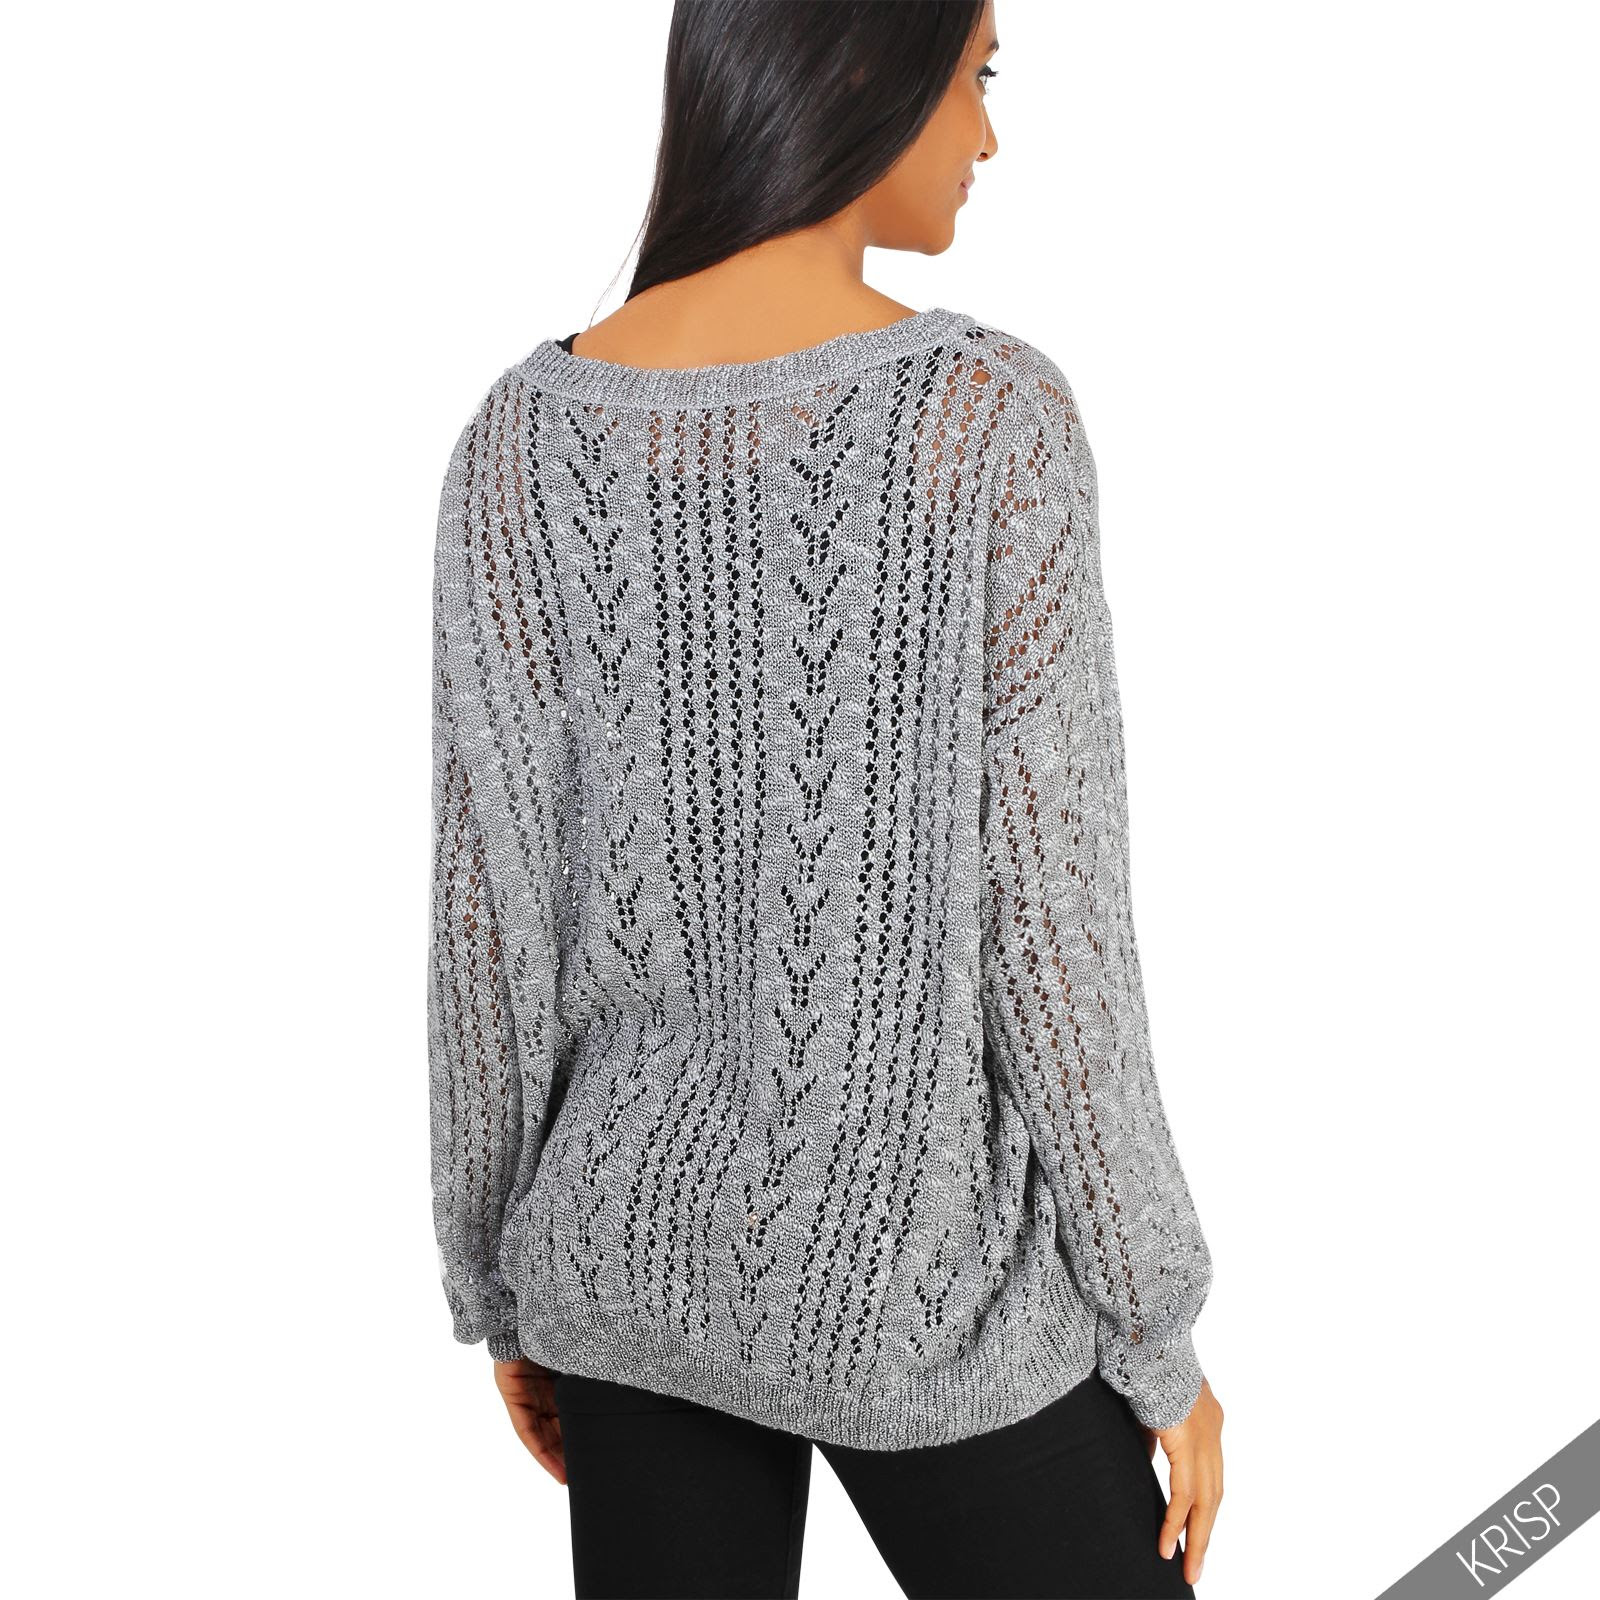 At clothing boyfriend jcpenney women cardigans for